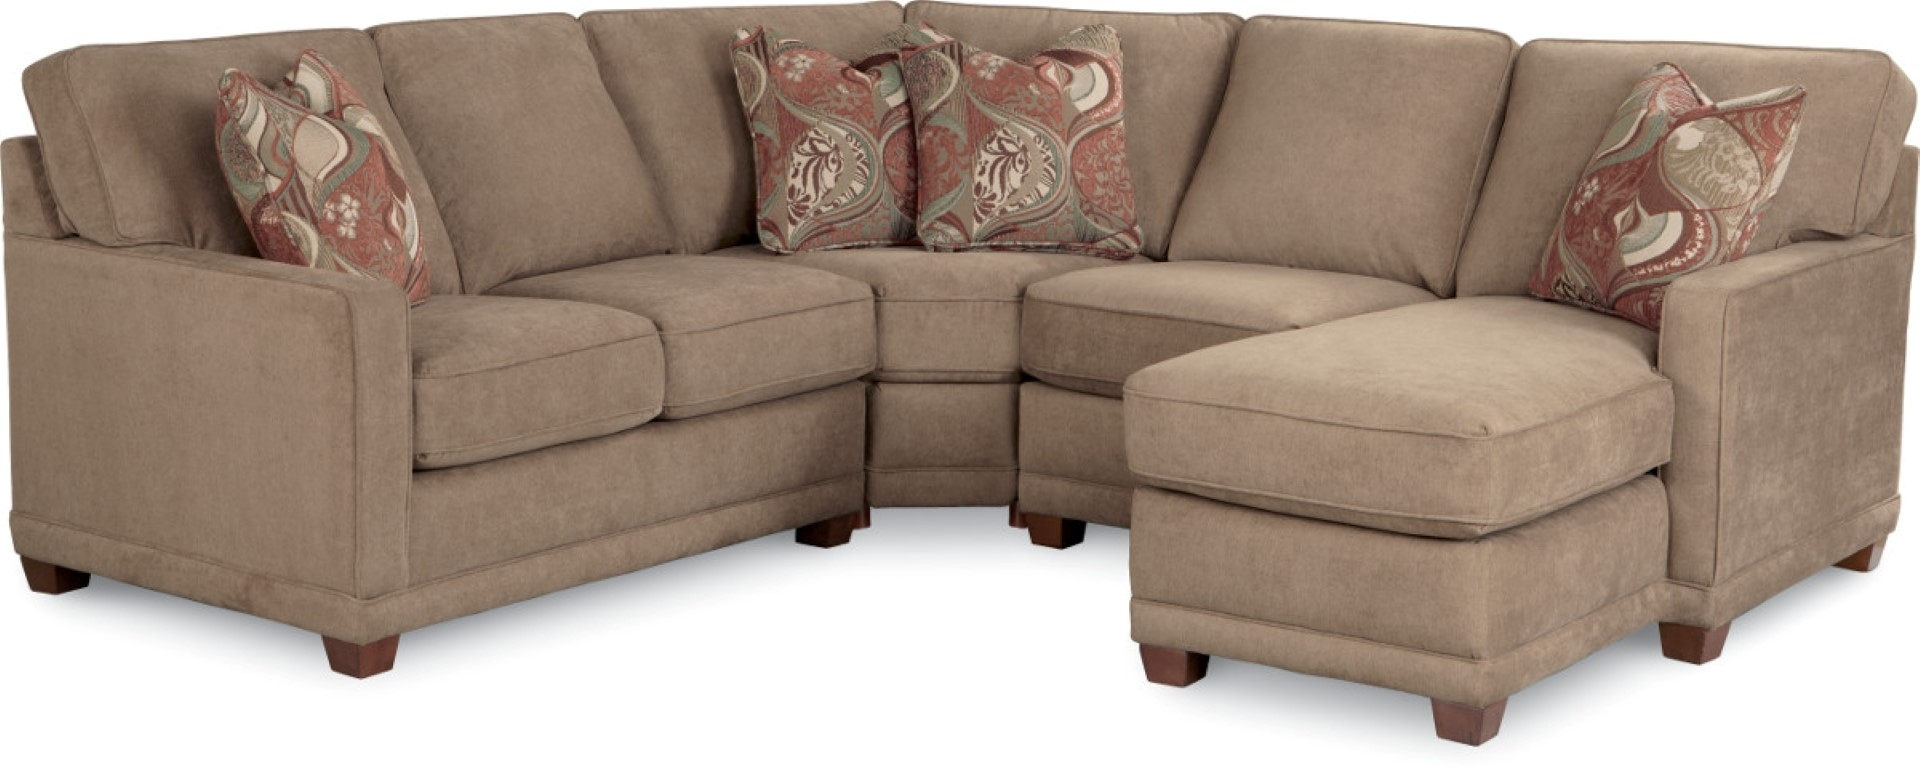 Kennedy Sectional Sofa – Town & Country Furniture With Regard To La Z Boy Sectional Sofas (View 2 of 10)